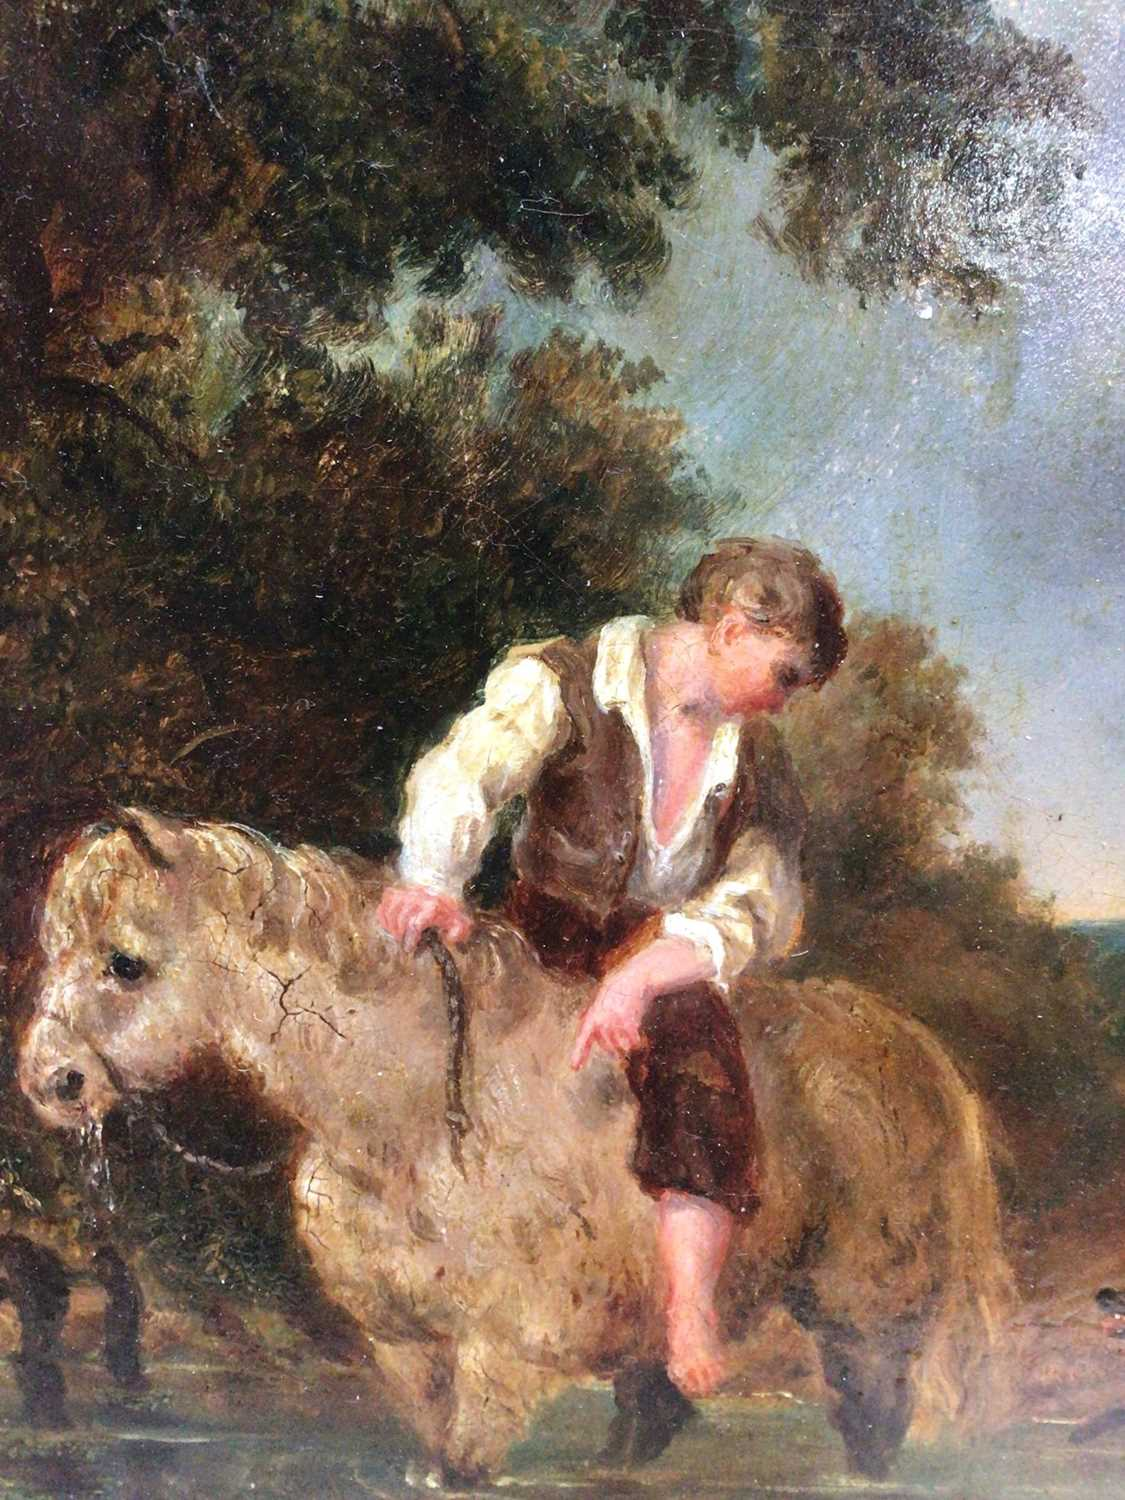 Lot 53 - English School 19th Century A boy on his pony with his dog in a stream, oil on board, in painted frame. 17 x 15cm.